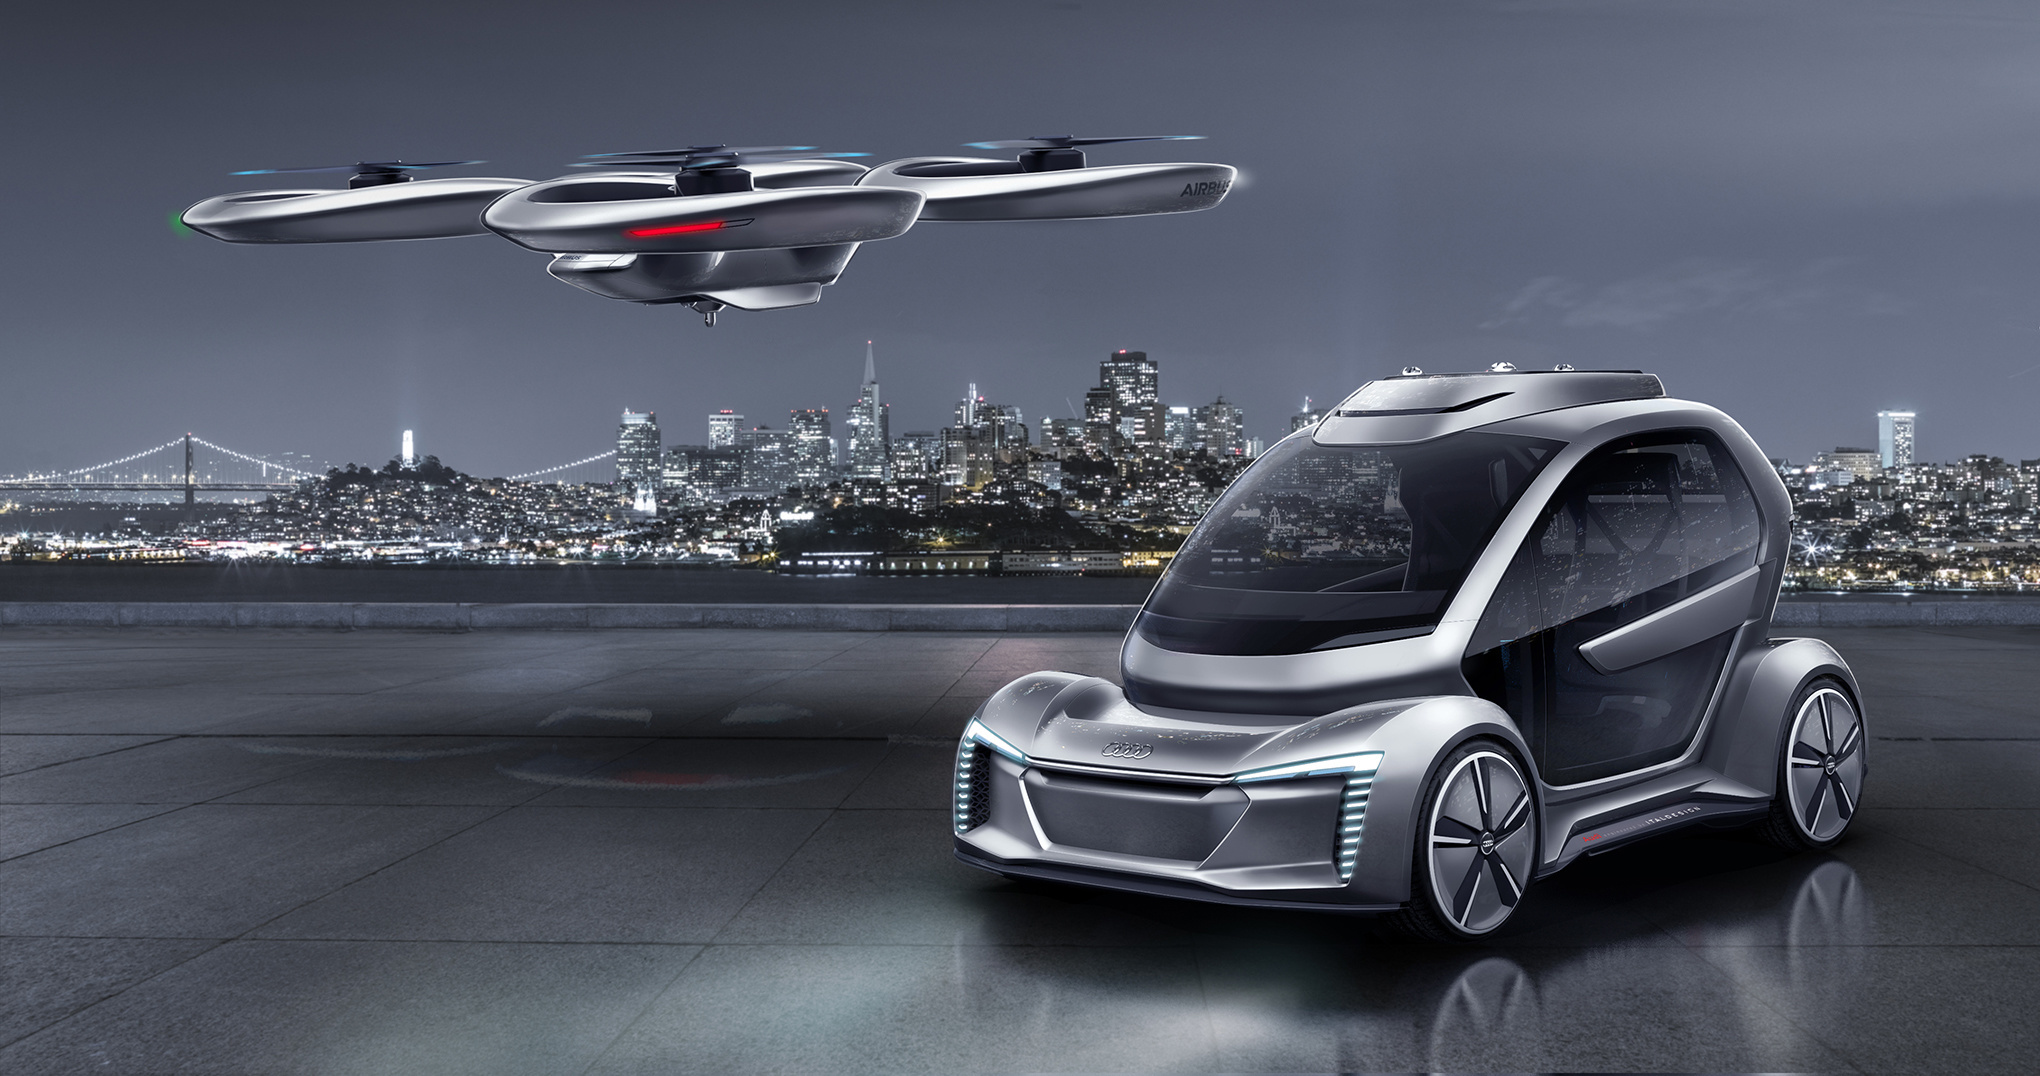 audi unveils the latest version of its flying car concept